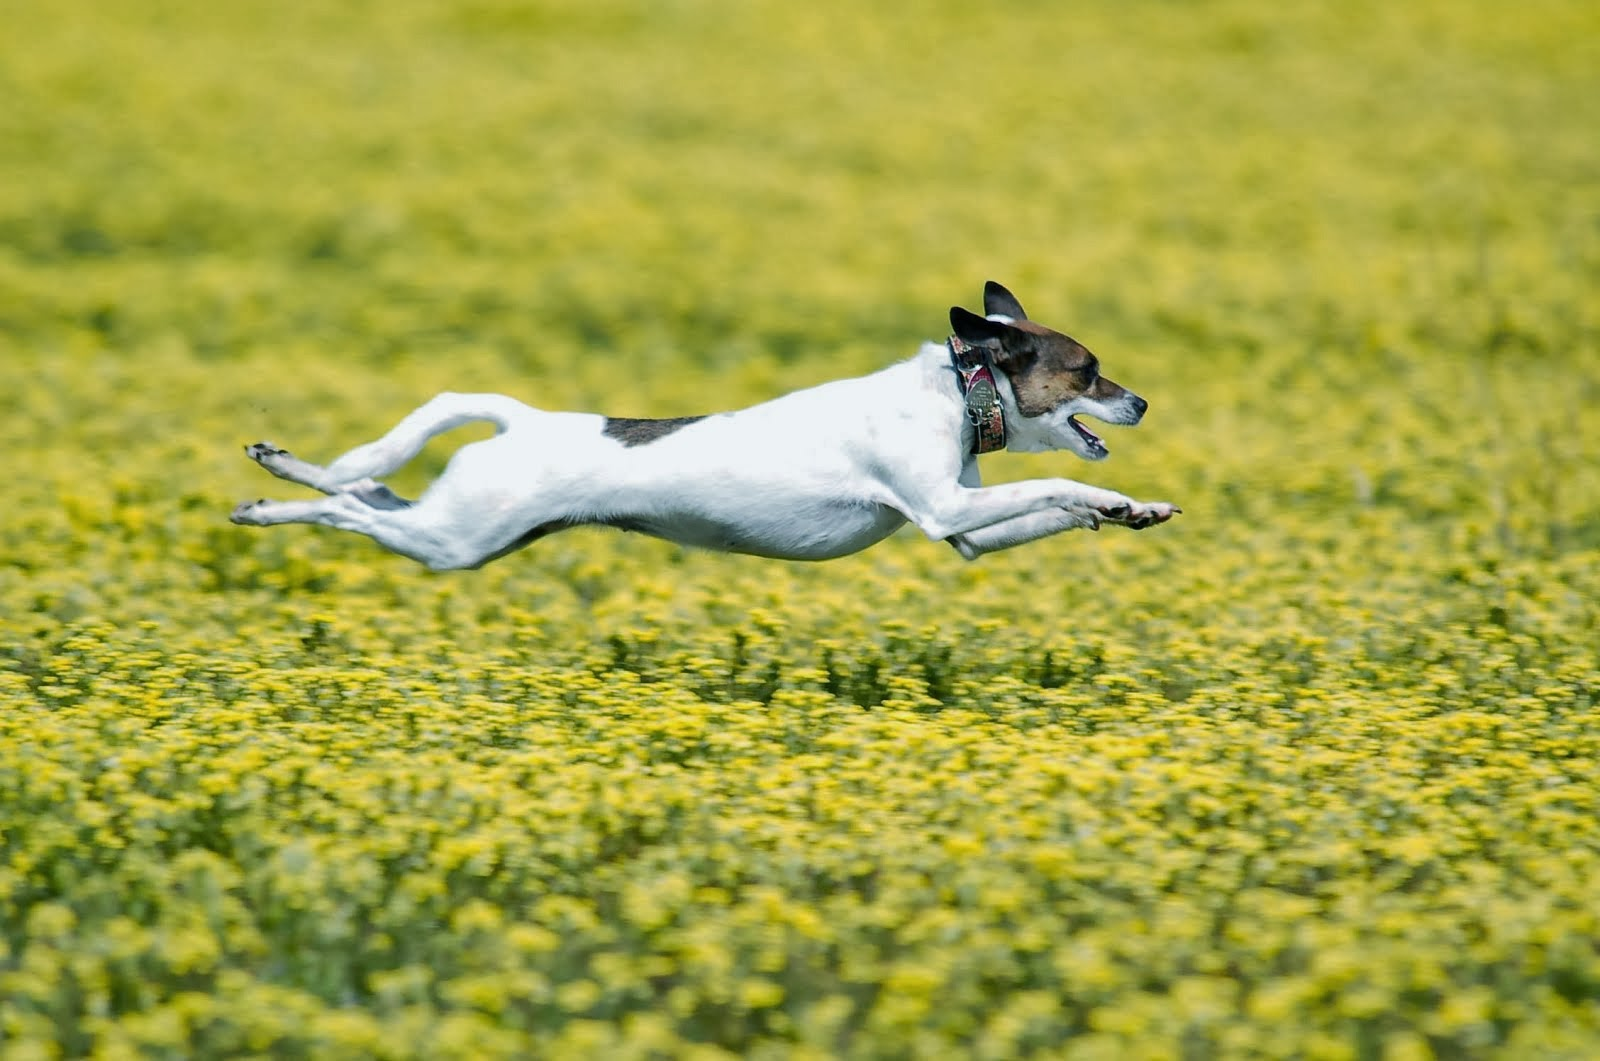 Click Here to View All My Dog Sports Photos!